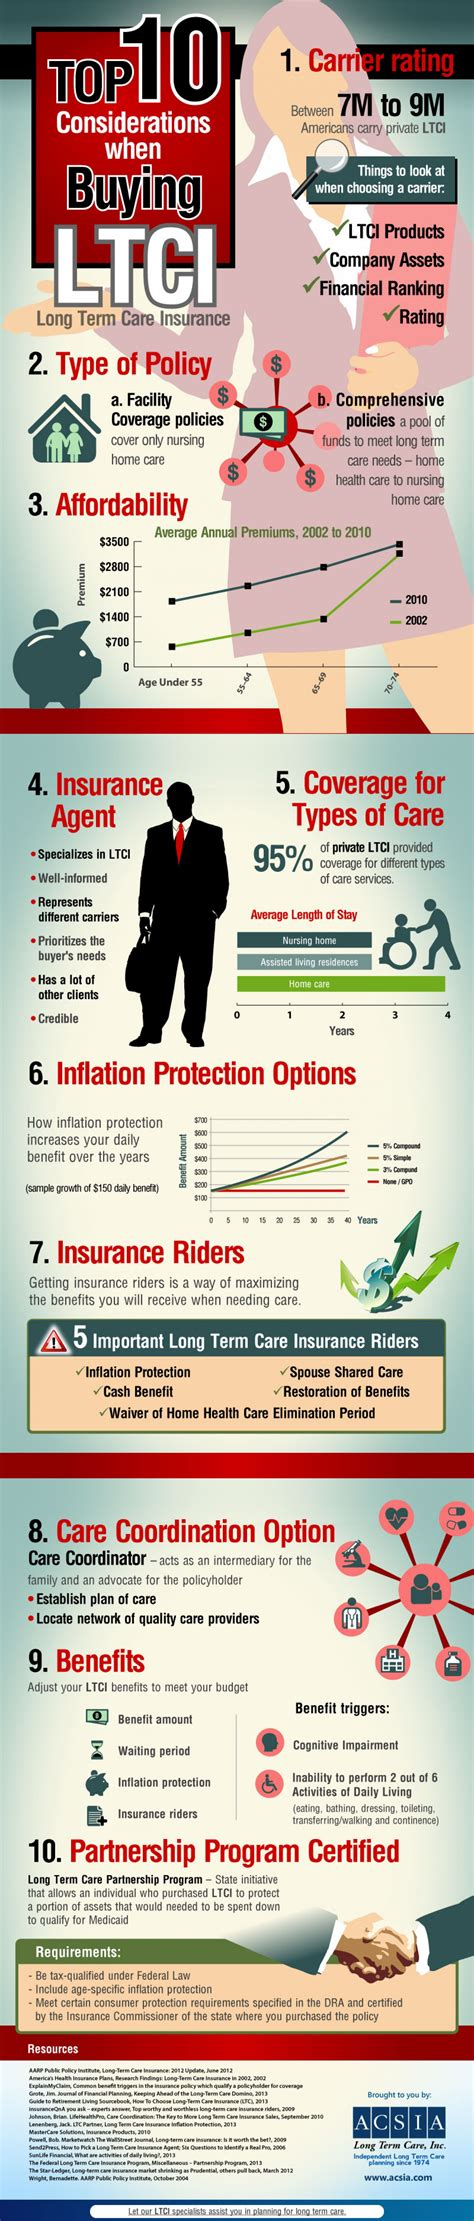 buy long term care insurance visually